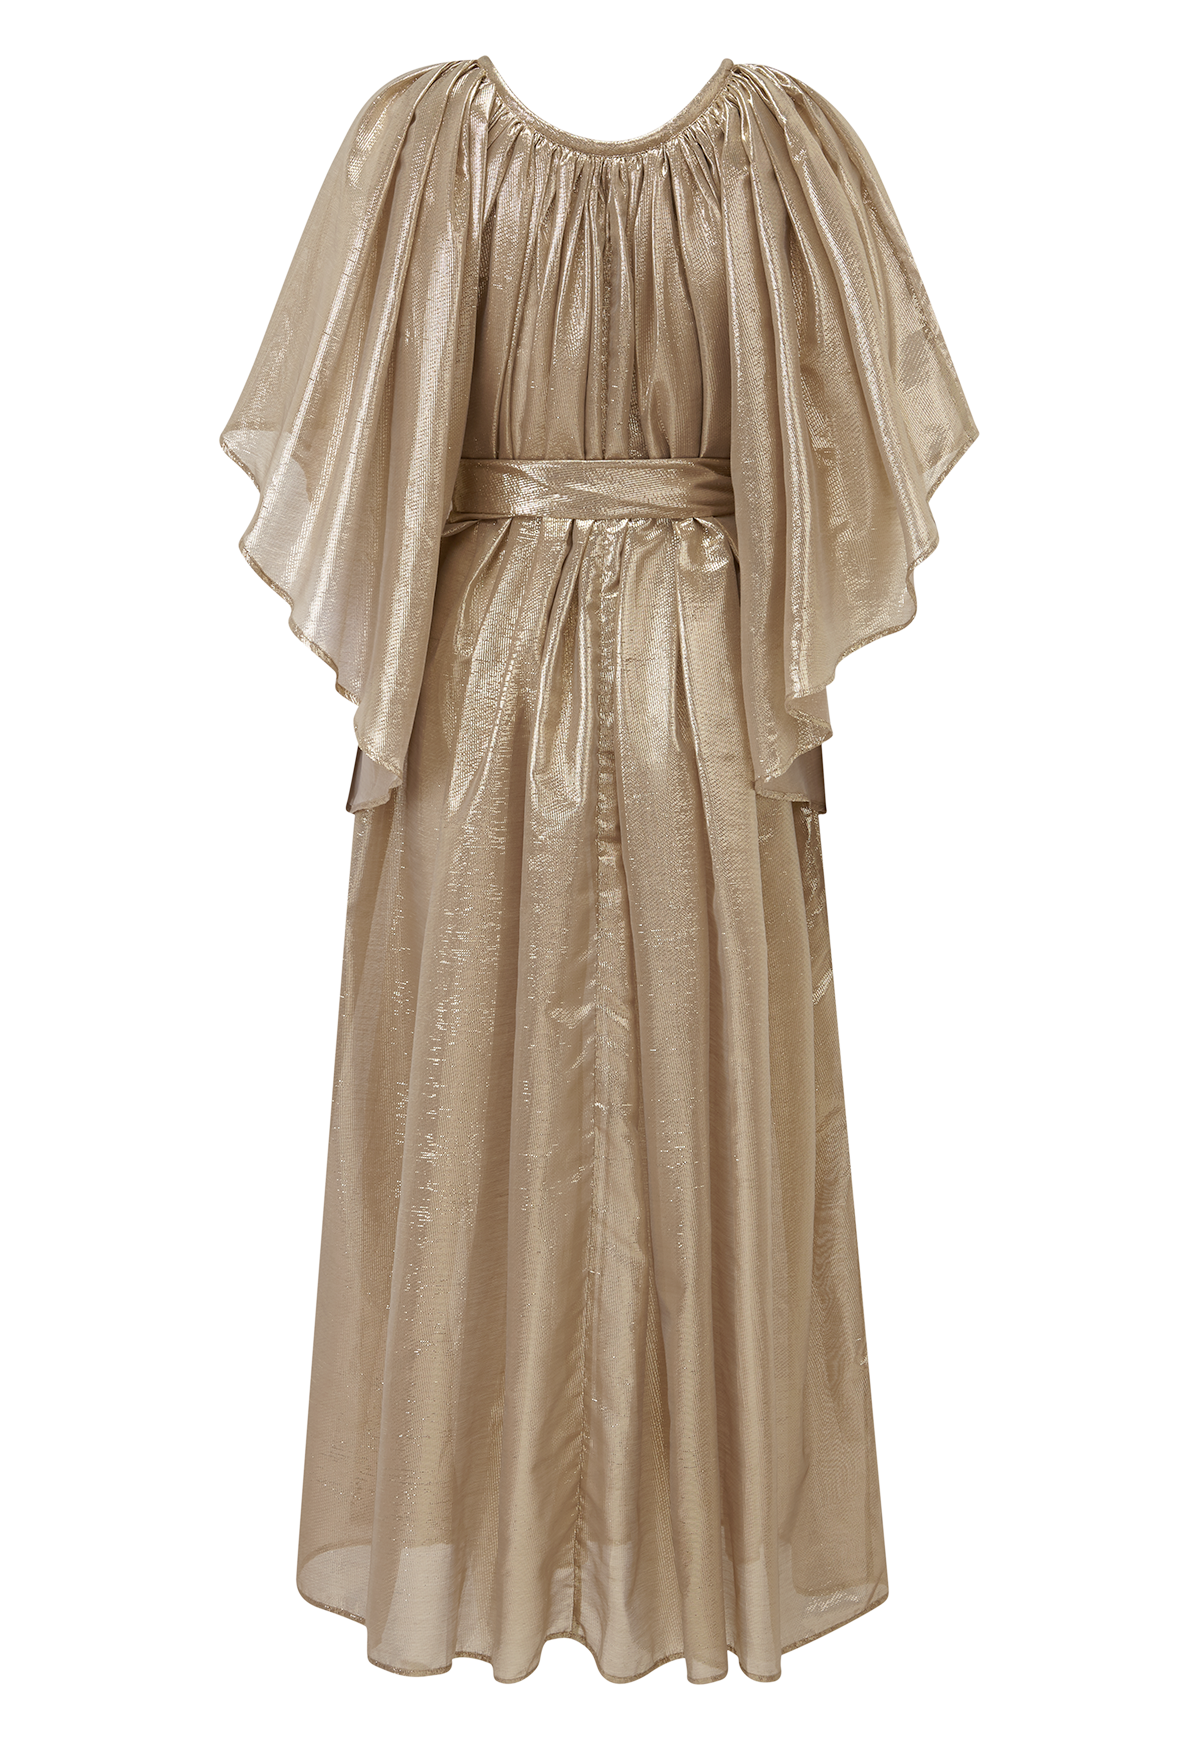 ANGEL SLEEVE GOLD METALLIC DRESS